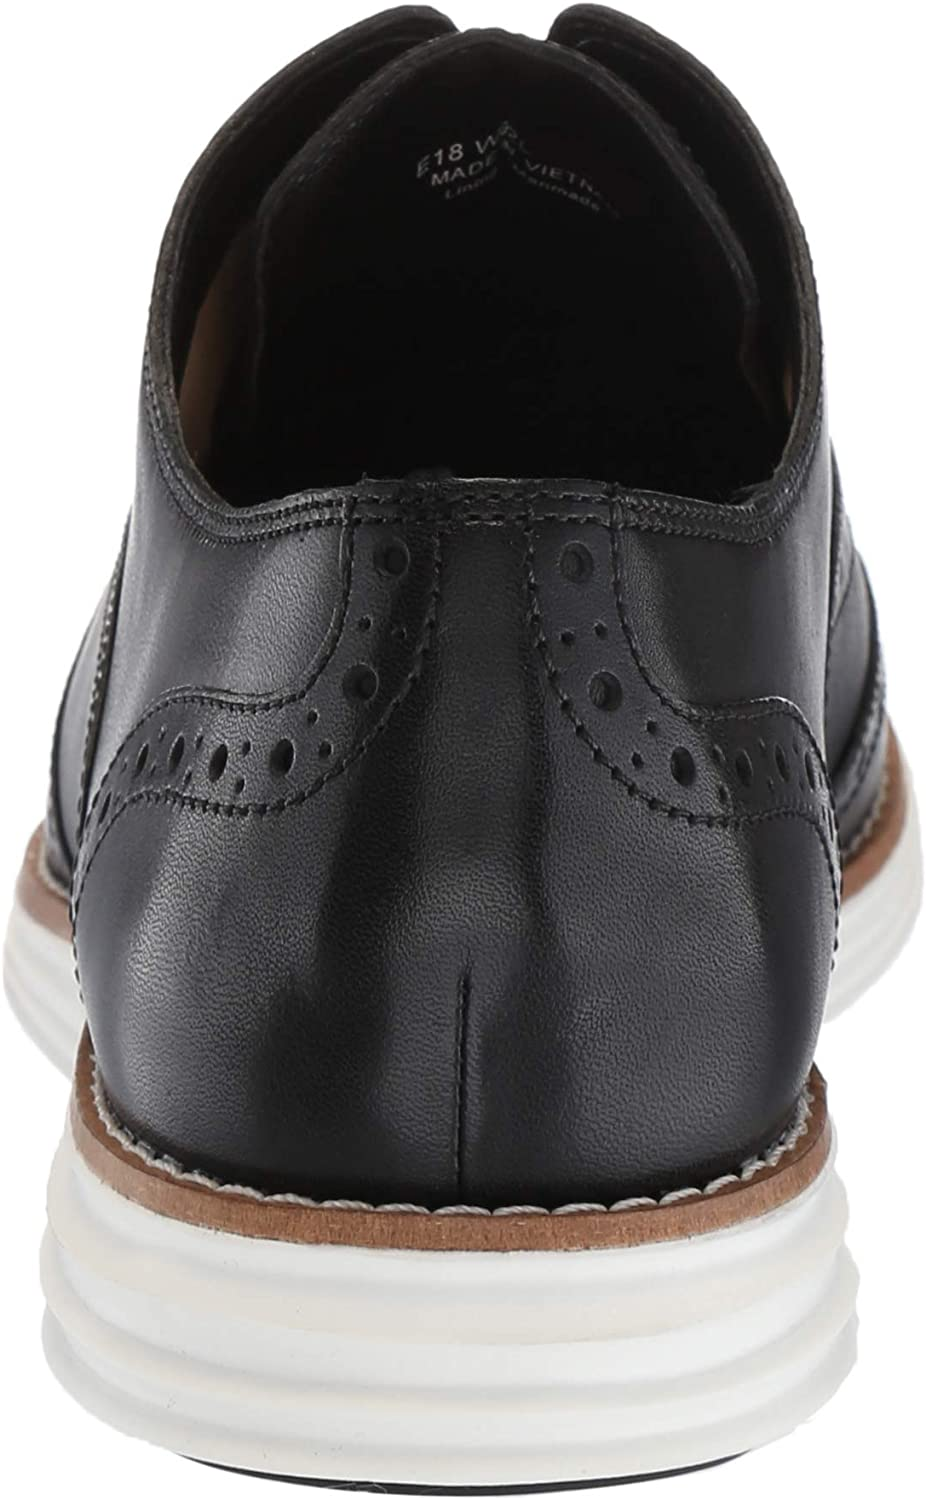 Cole Haan Womens Original Grand Wing Oxford Oxford